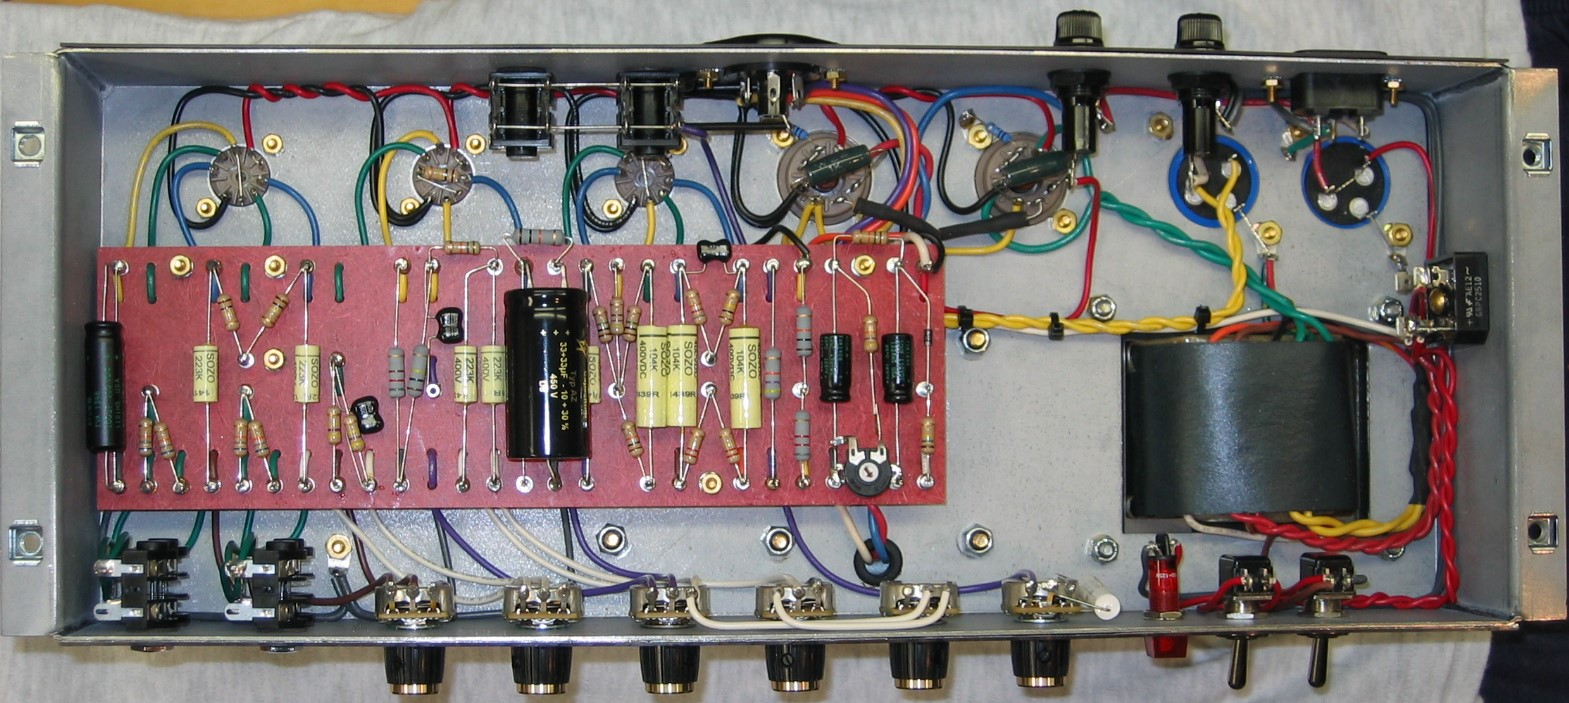 sold marshall 50 watt metro style turret boards for diy amp rh thegearpage net LED Circuit Boards Perf Board